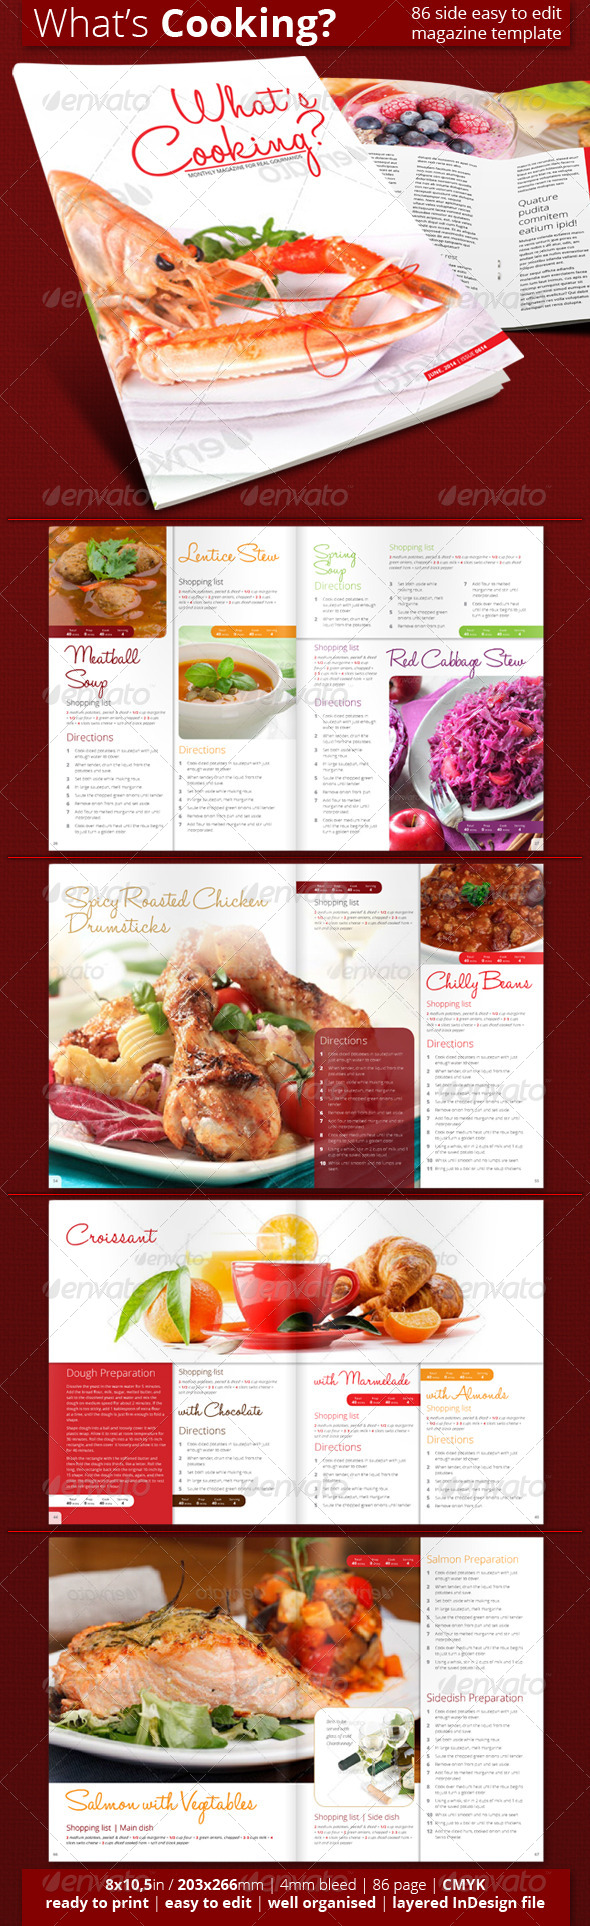 GraphicRiver What s Cooking 7876518